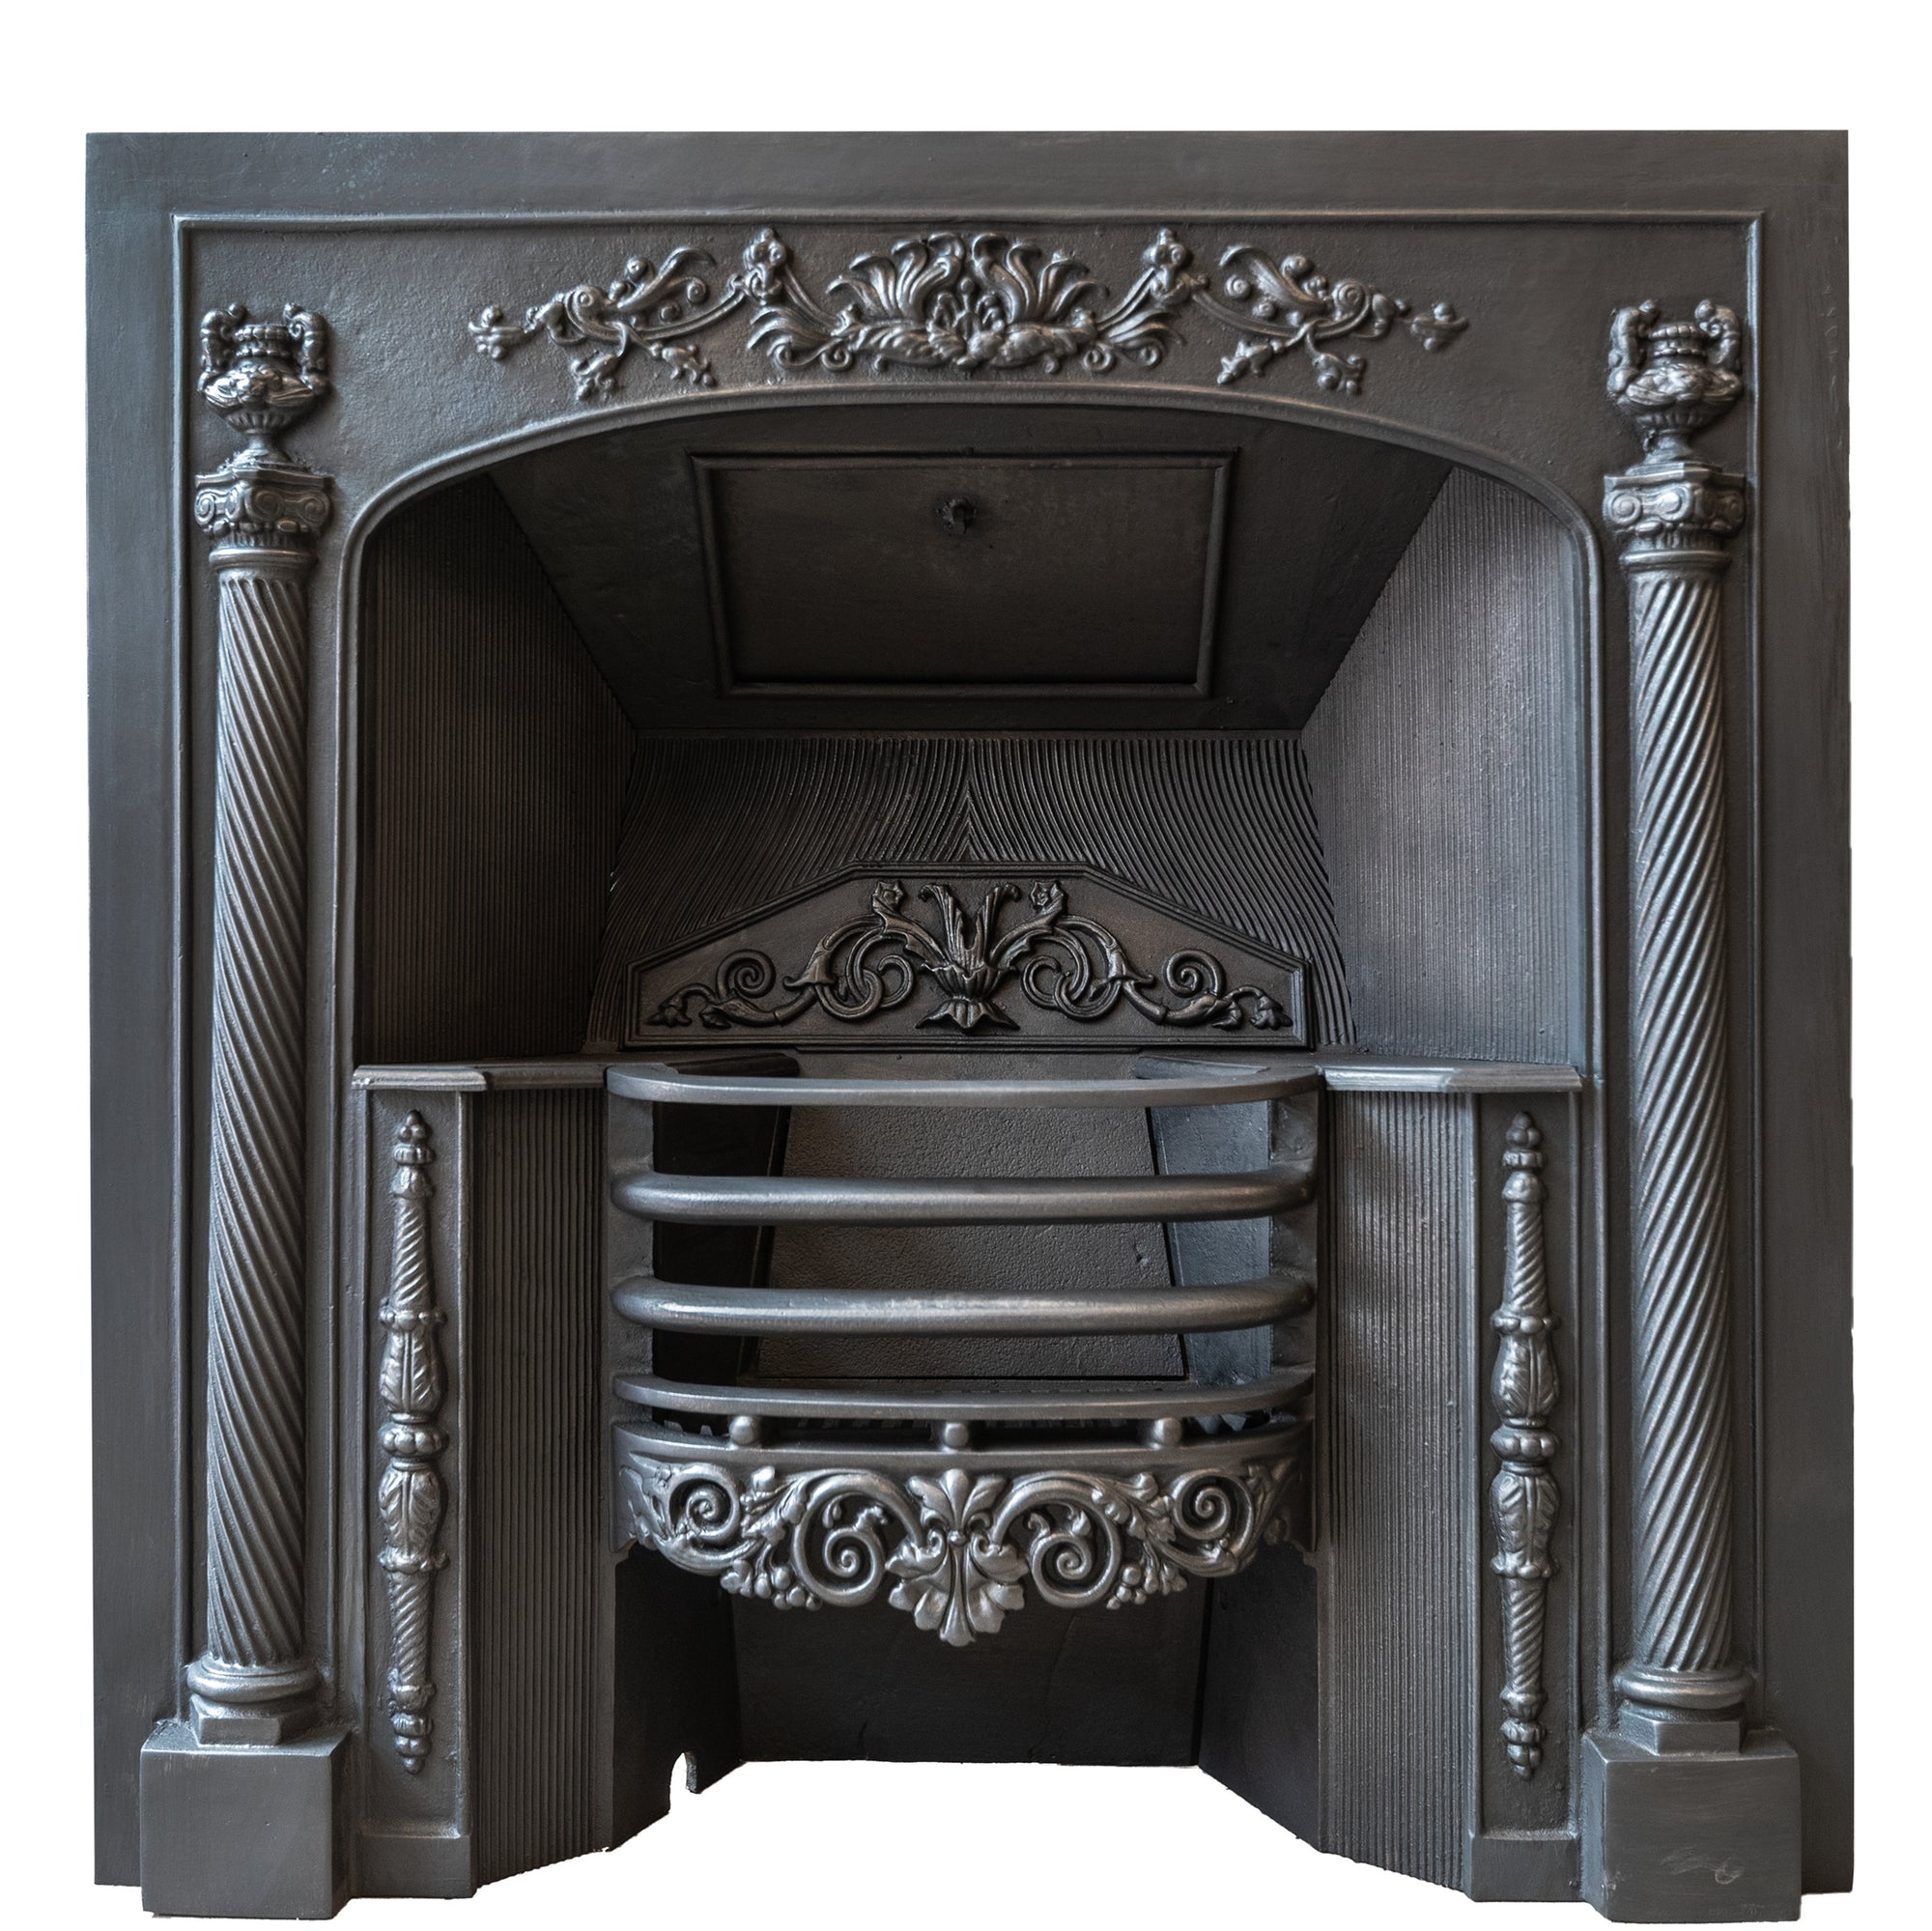 Reclaimed Ornate Georgian Regency Style Cast Iron Hob Grate (2 available) | The Architectural Forum